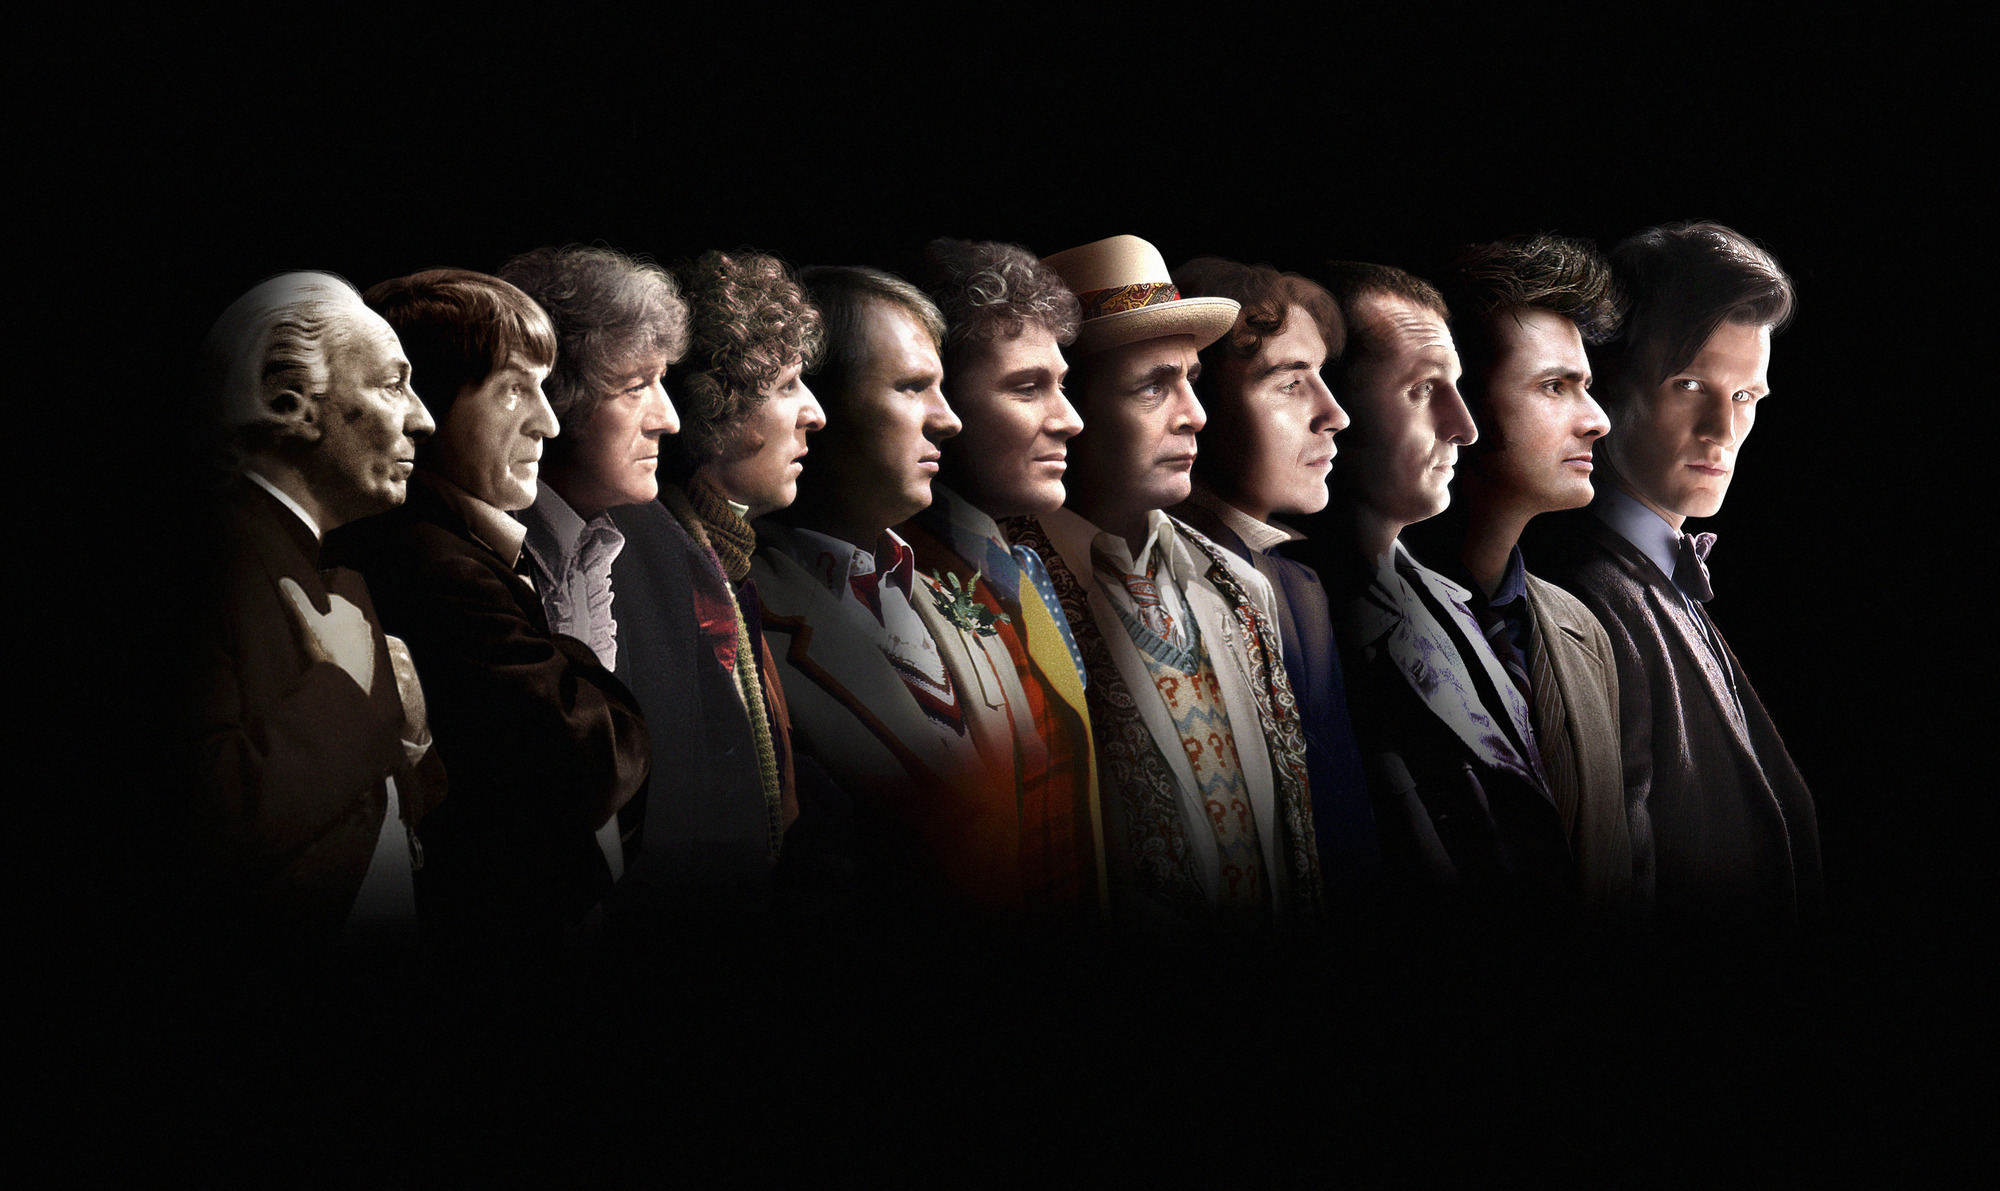 The Night of the Doctor rewrites Doctor Who history for the better